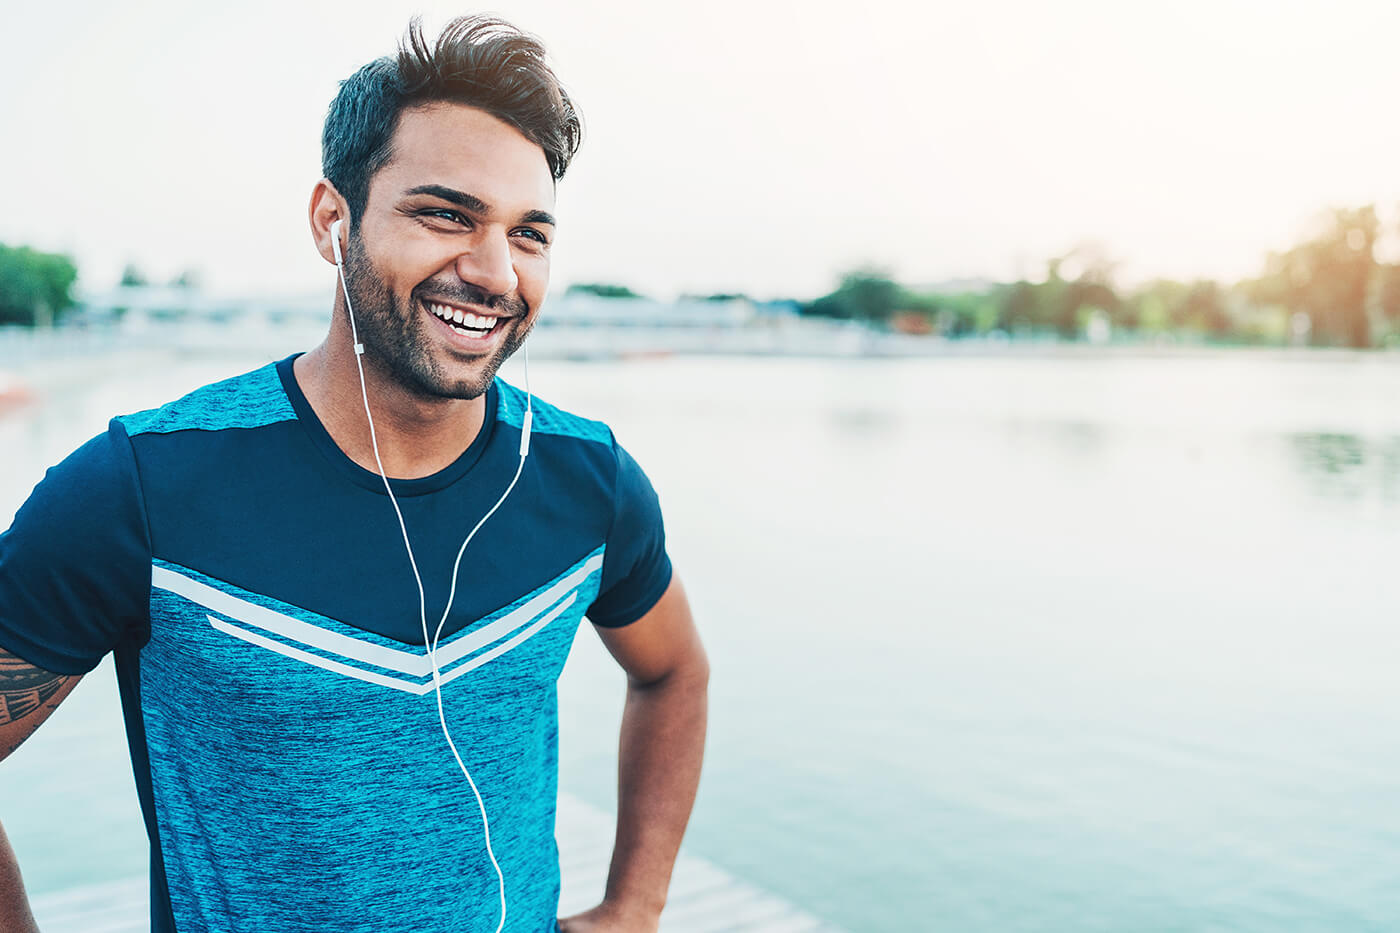 runner guy with earbuds in smiling laughing